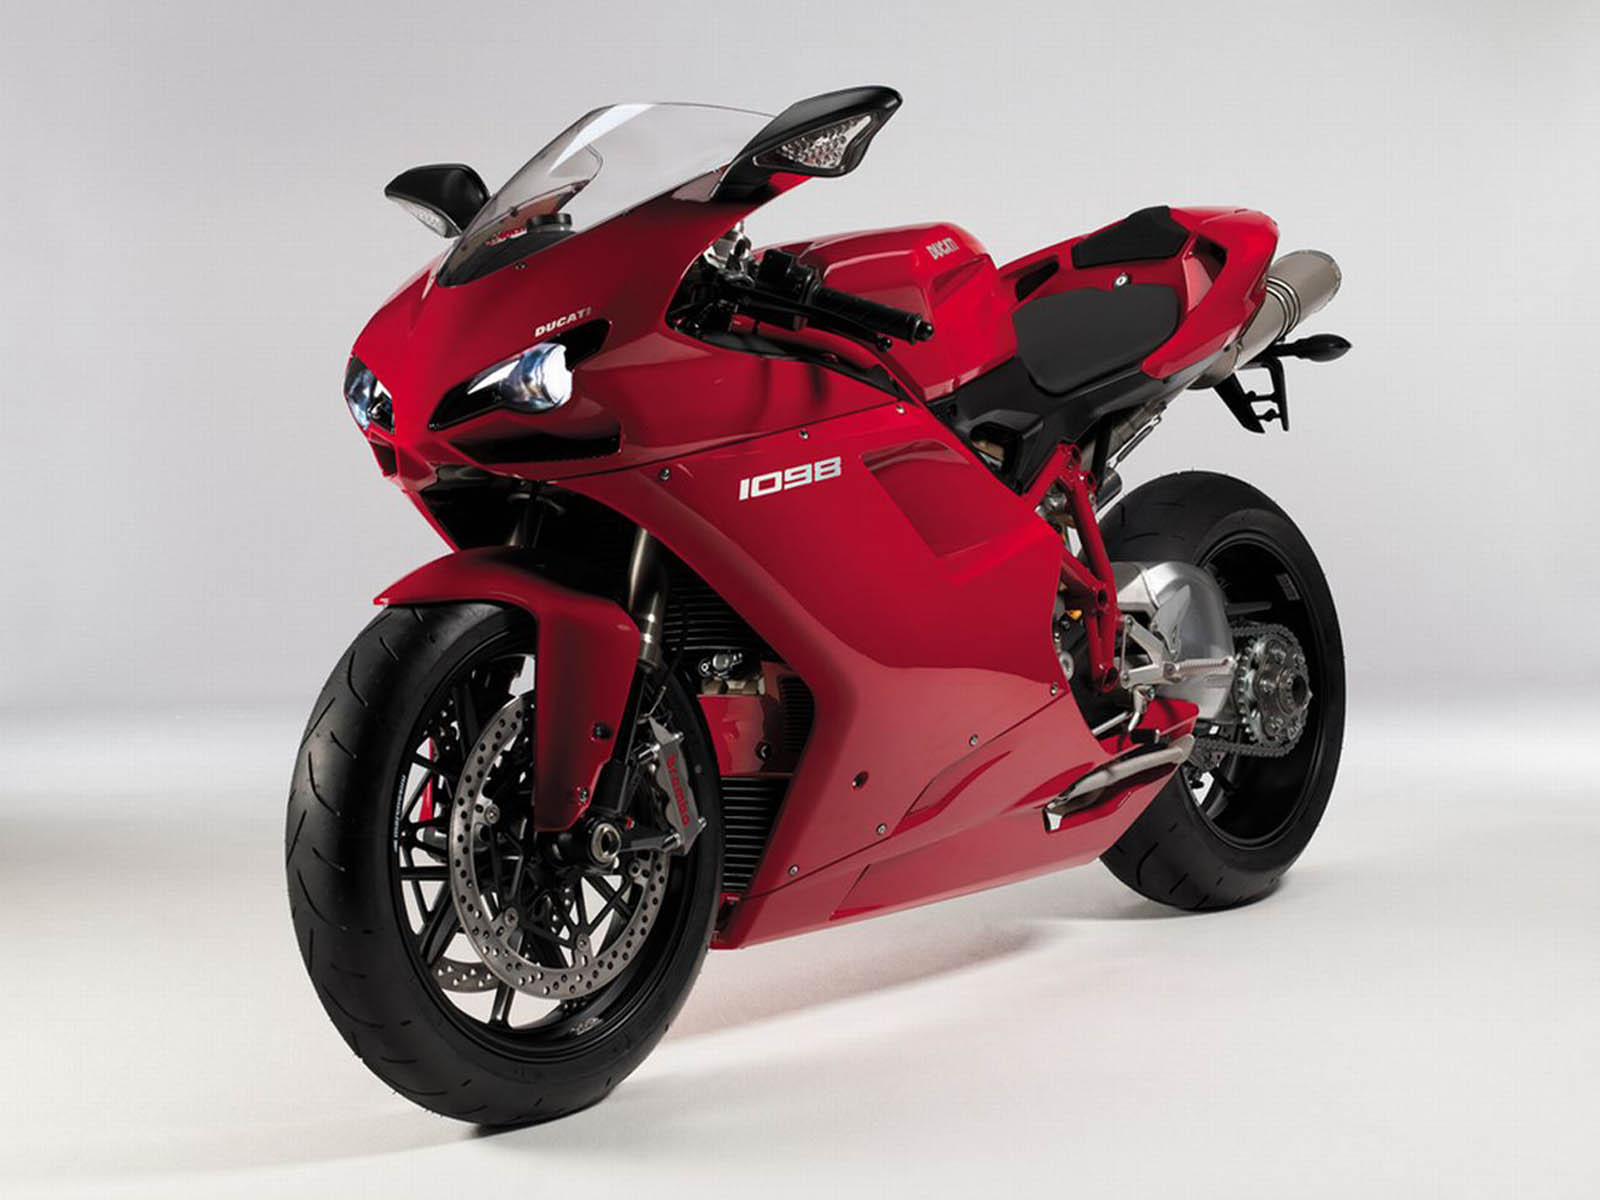 ducati 1098 bike wallpapers hd wallpapers. Black Bedroom Furniture Sets. Home Design Ideas